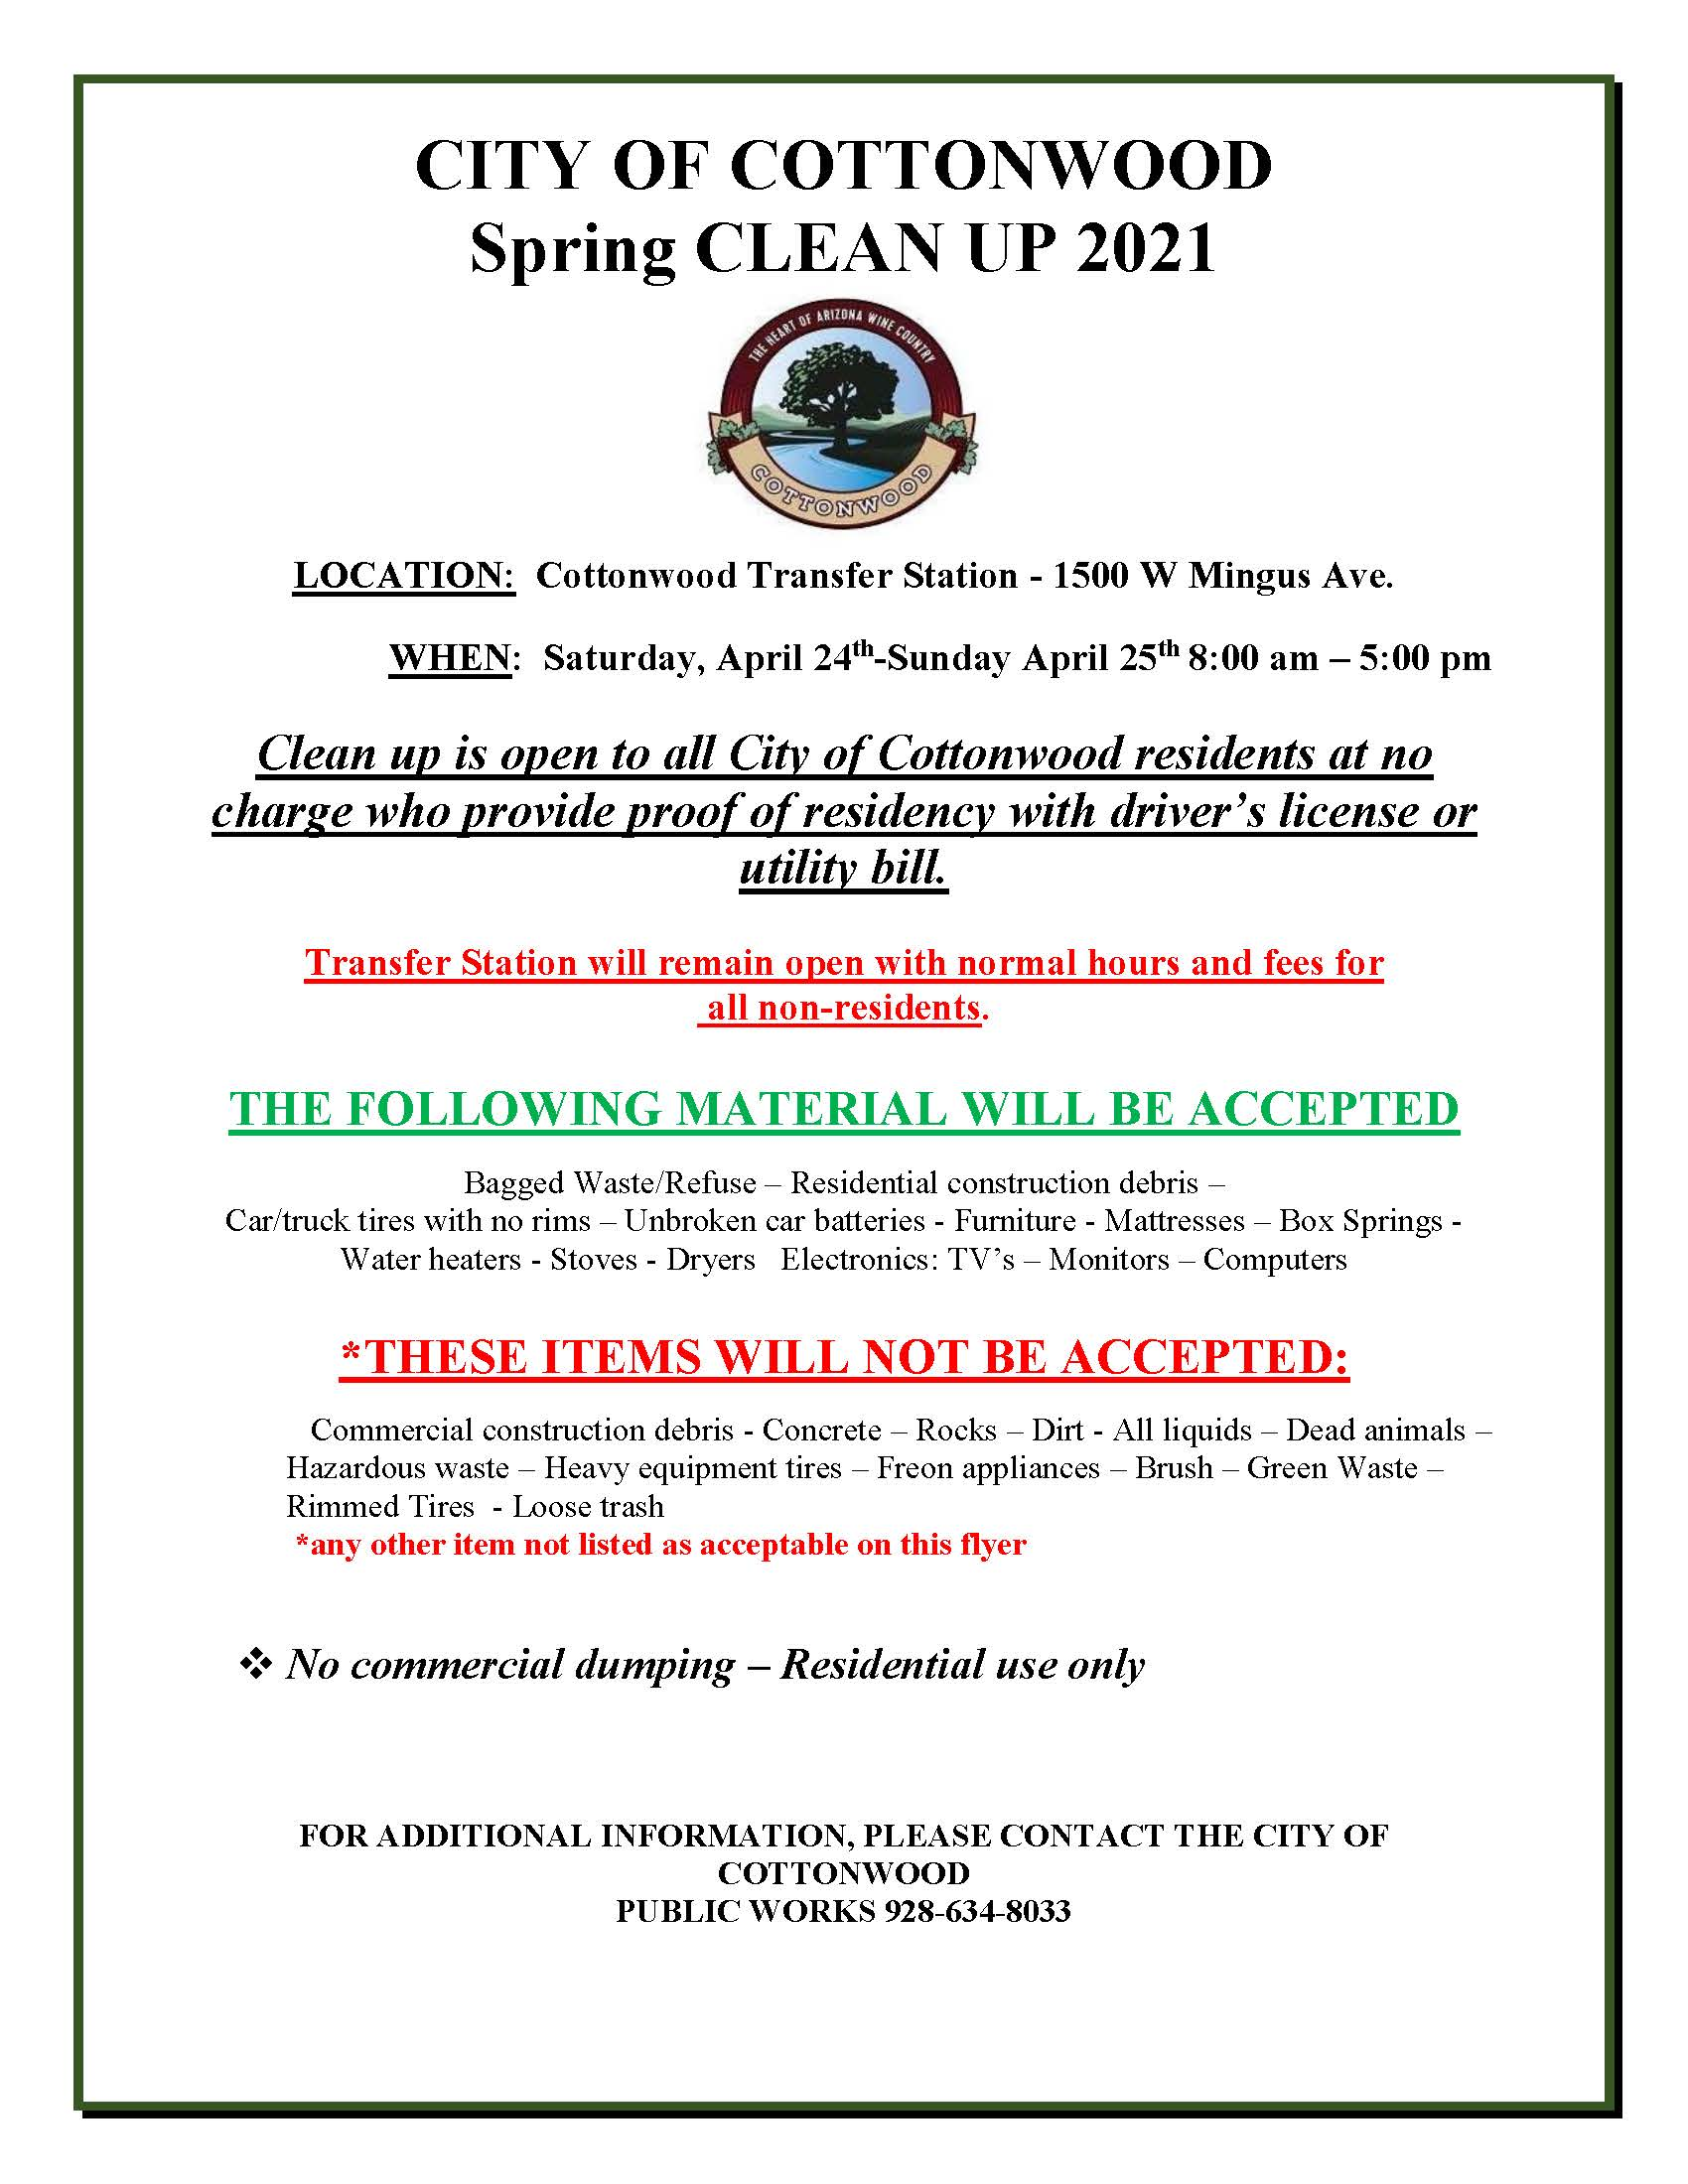 PSA - City of Cottonwood Spring Clean Up 2021